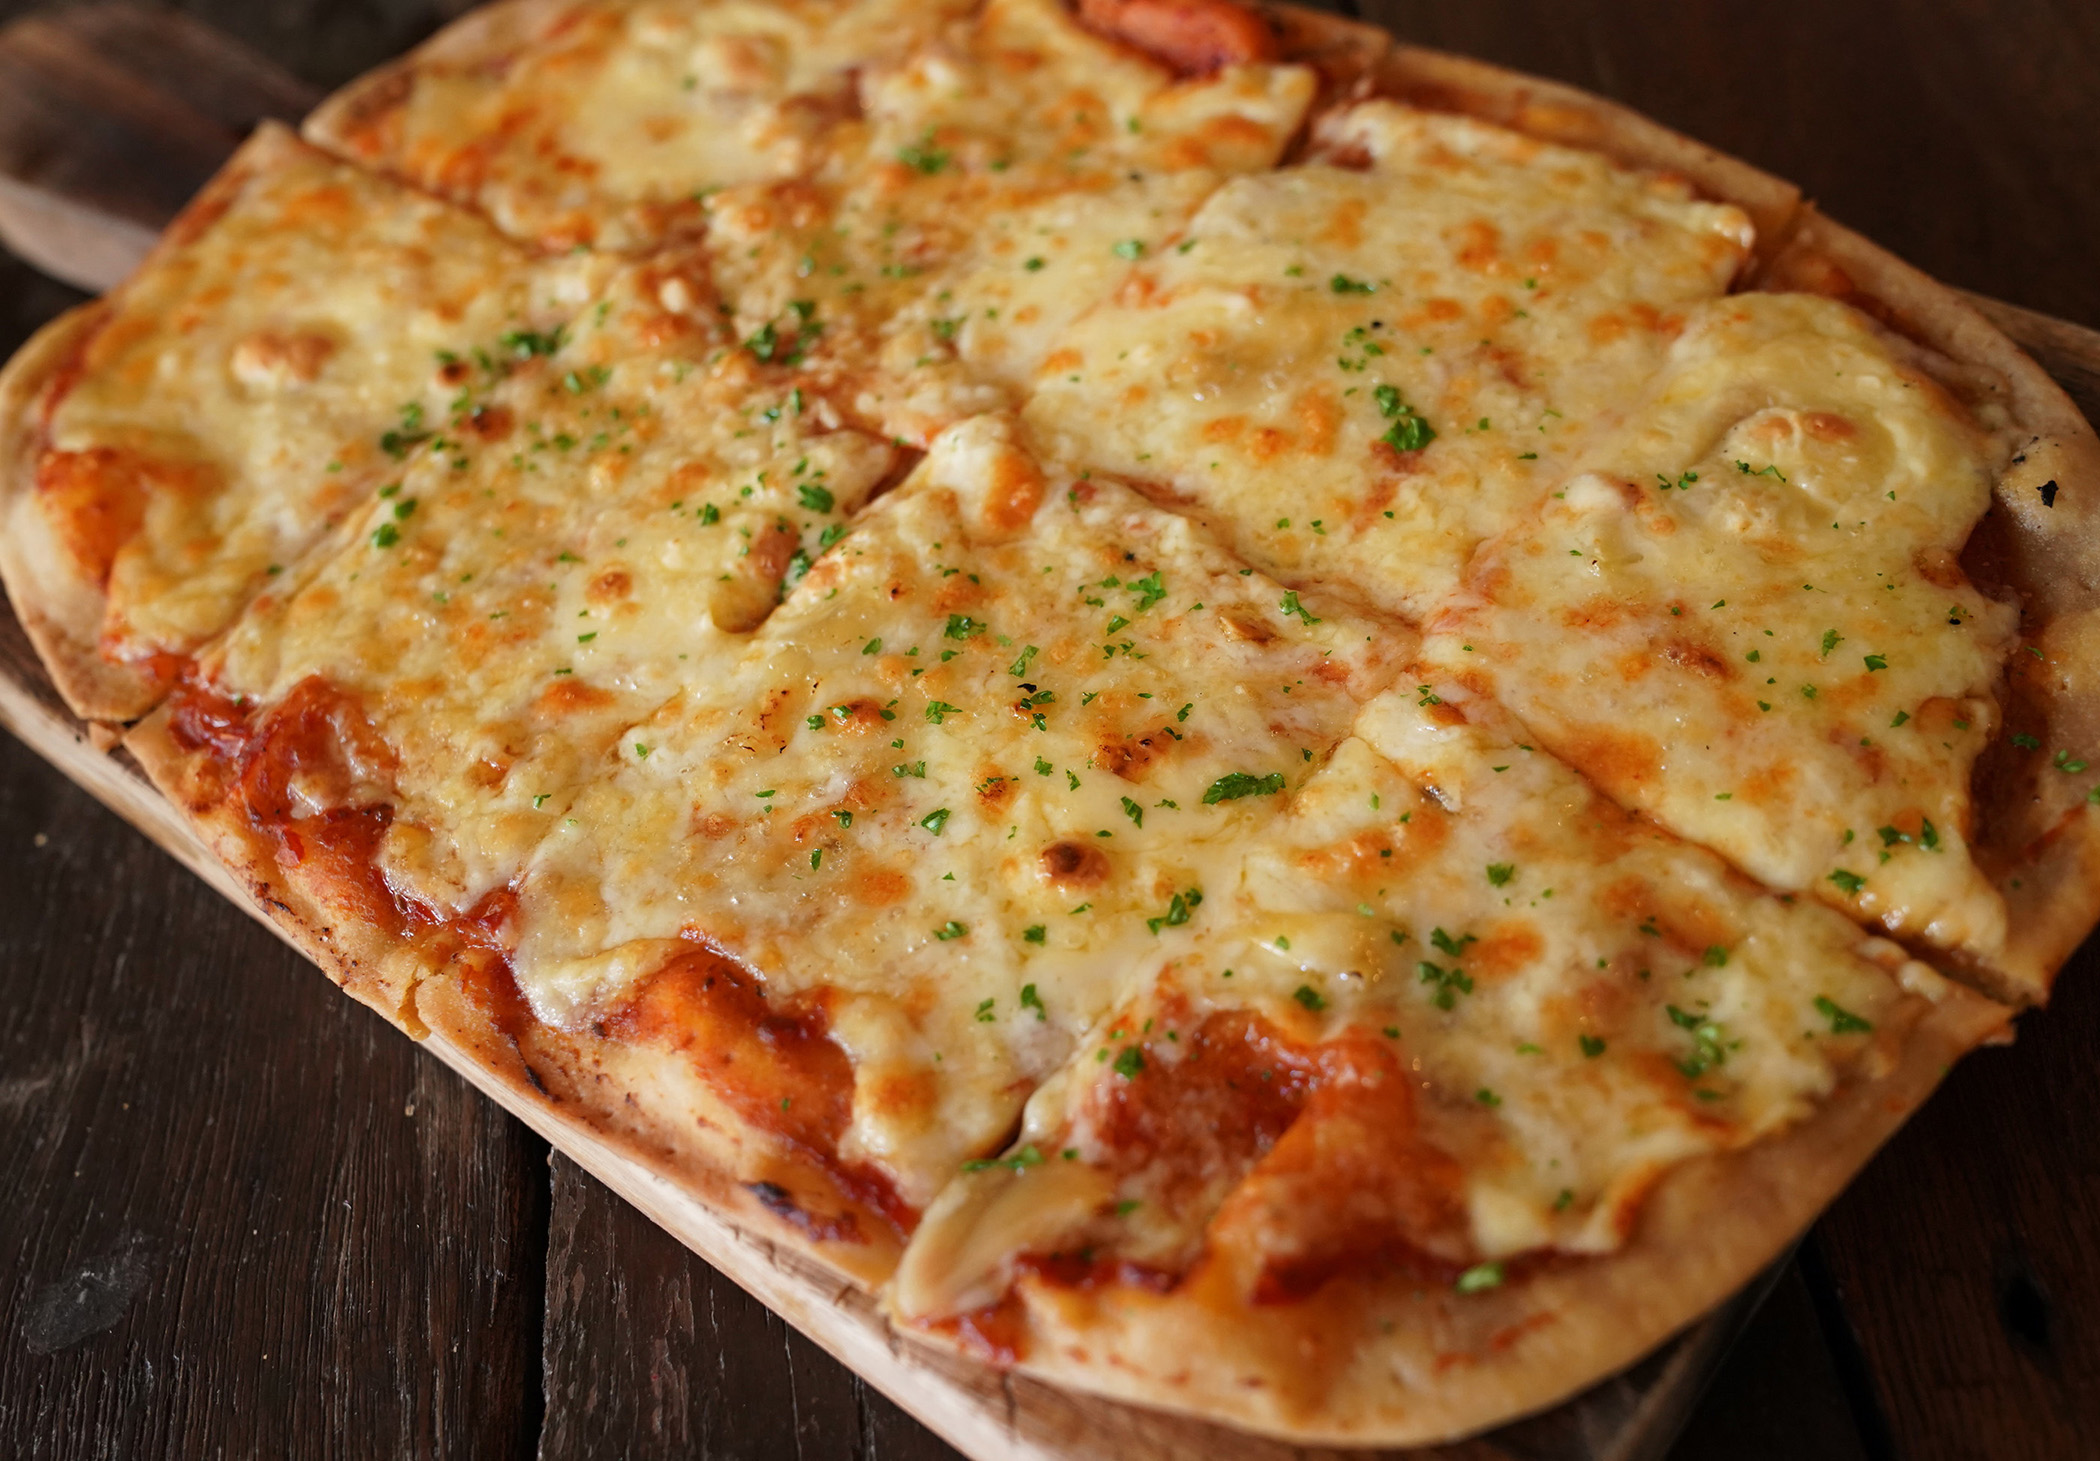 Four-cheese Pizza made with Anchor Shredded Mozzarella ...